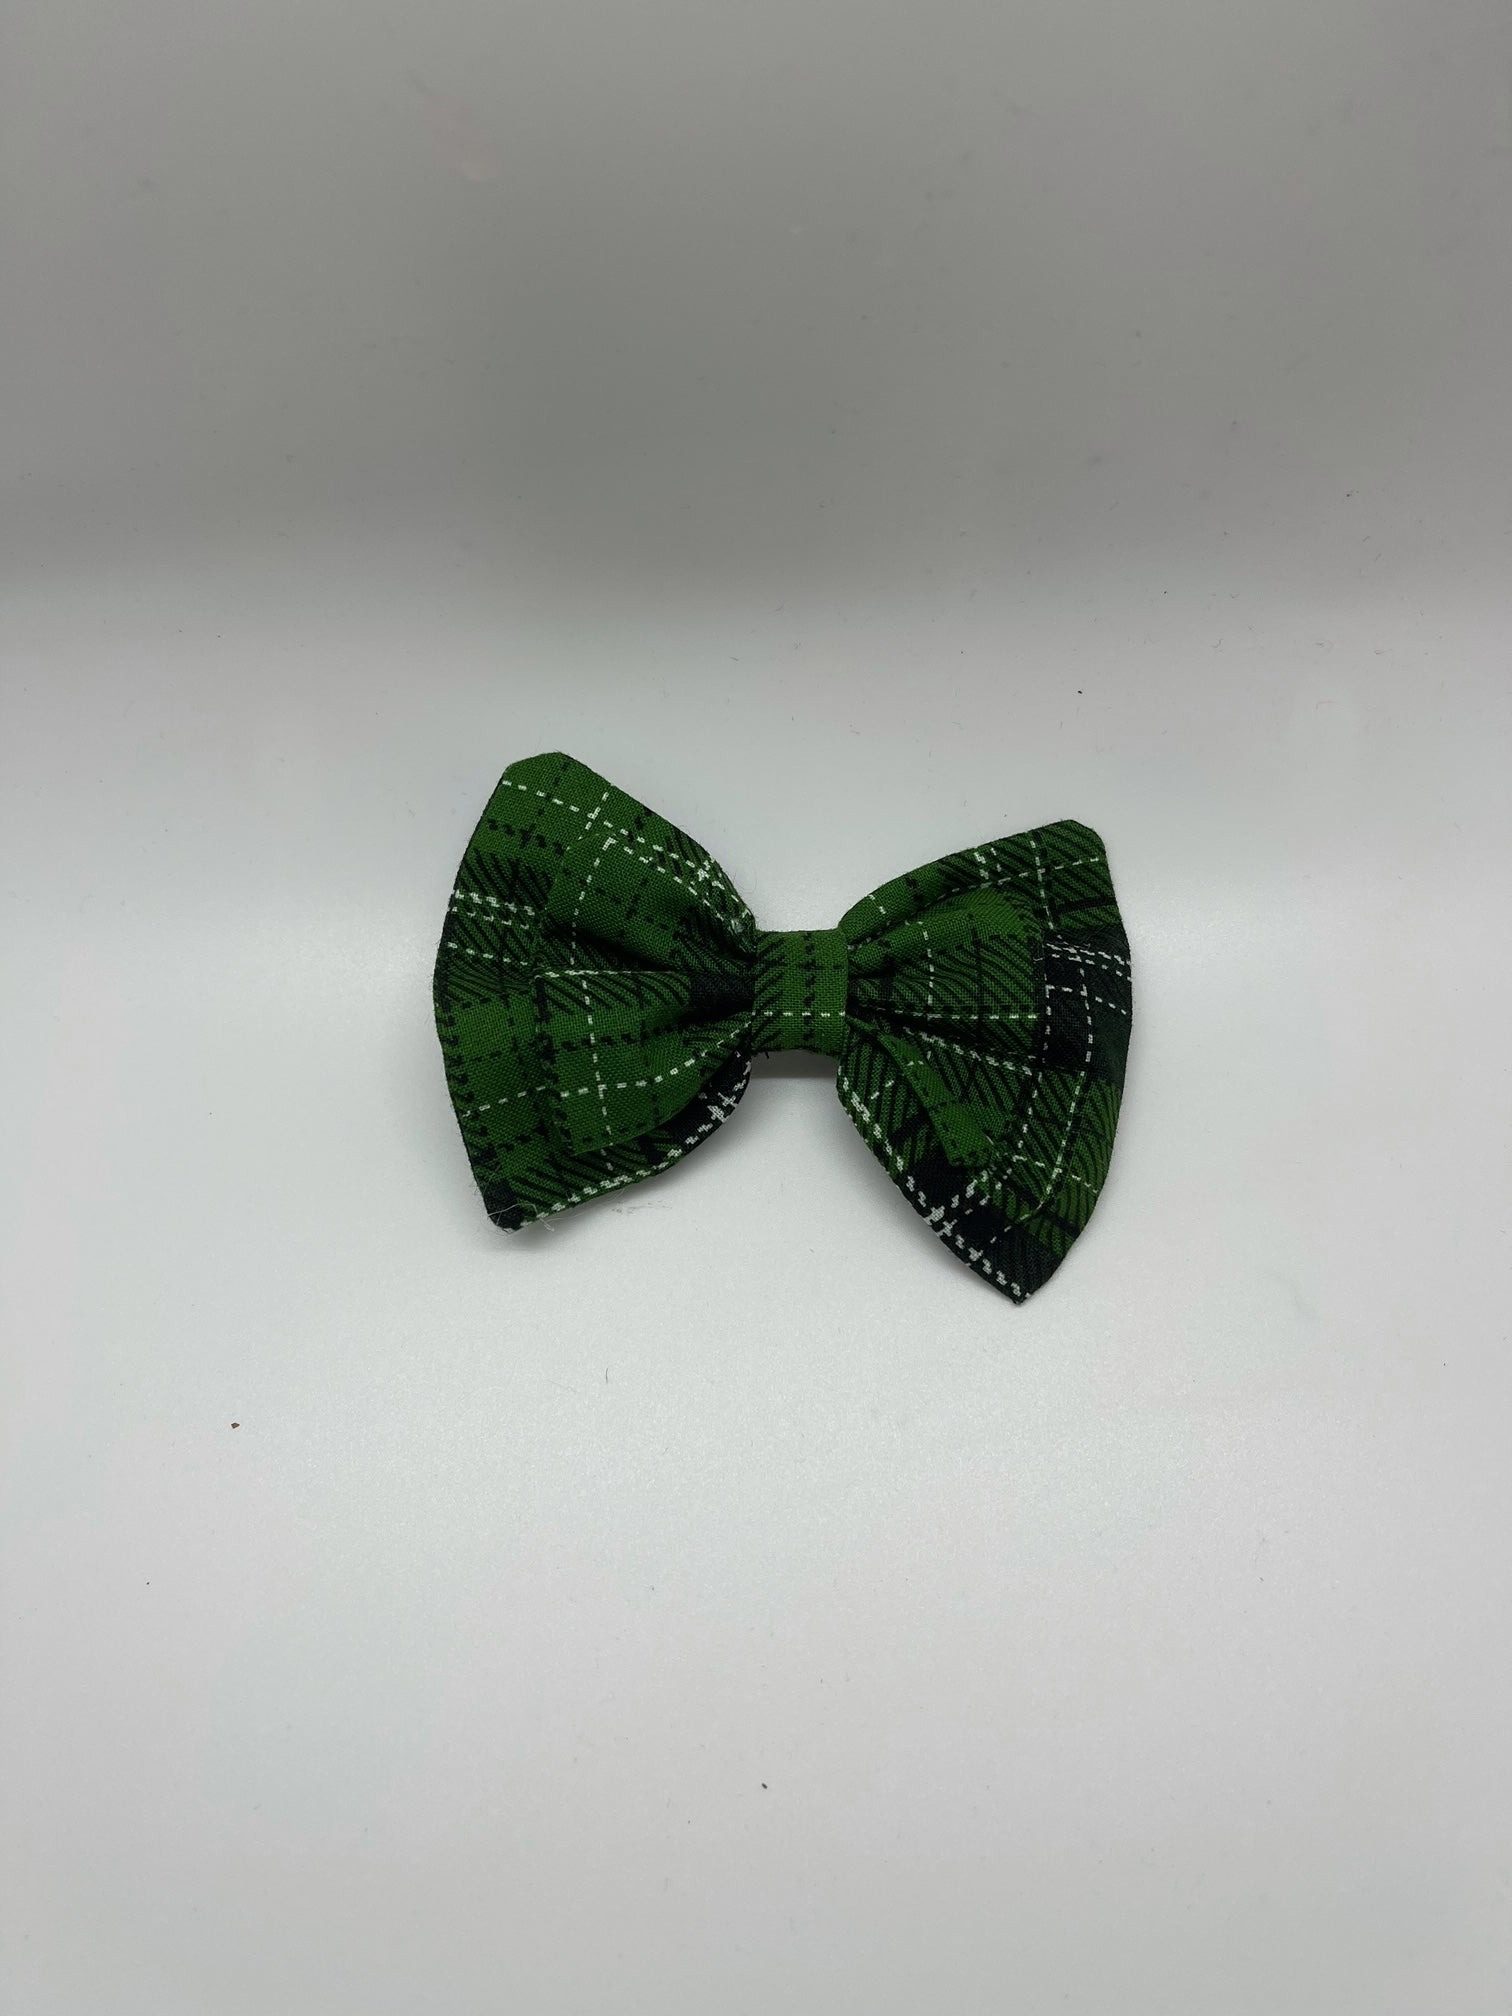 WALNUT STREET TREASURES - GREEN/BLACK/WHITE PLAID